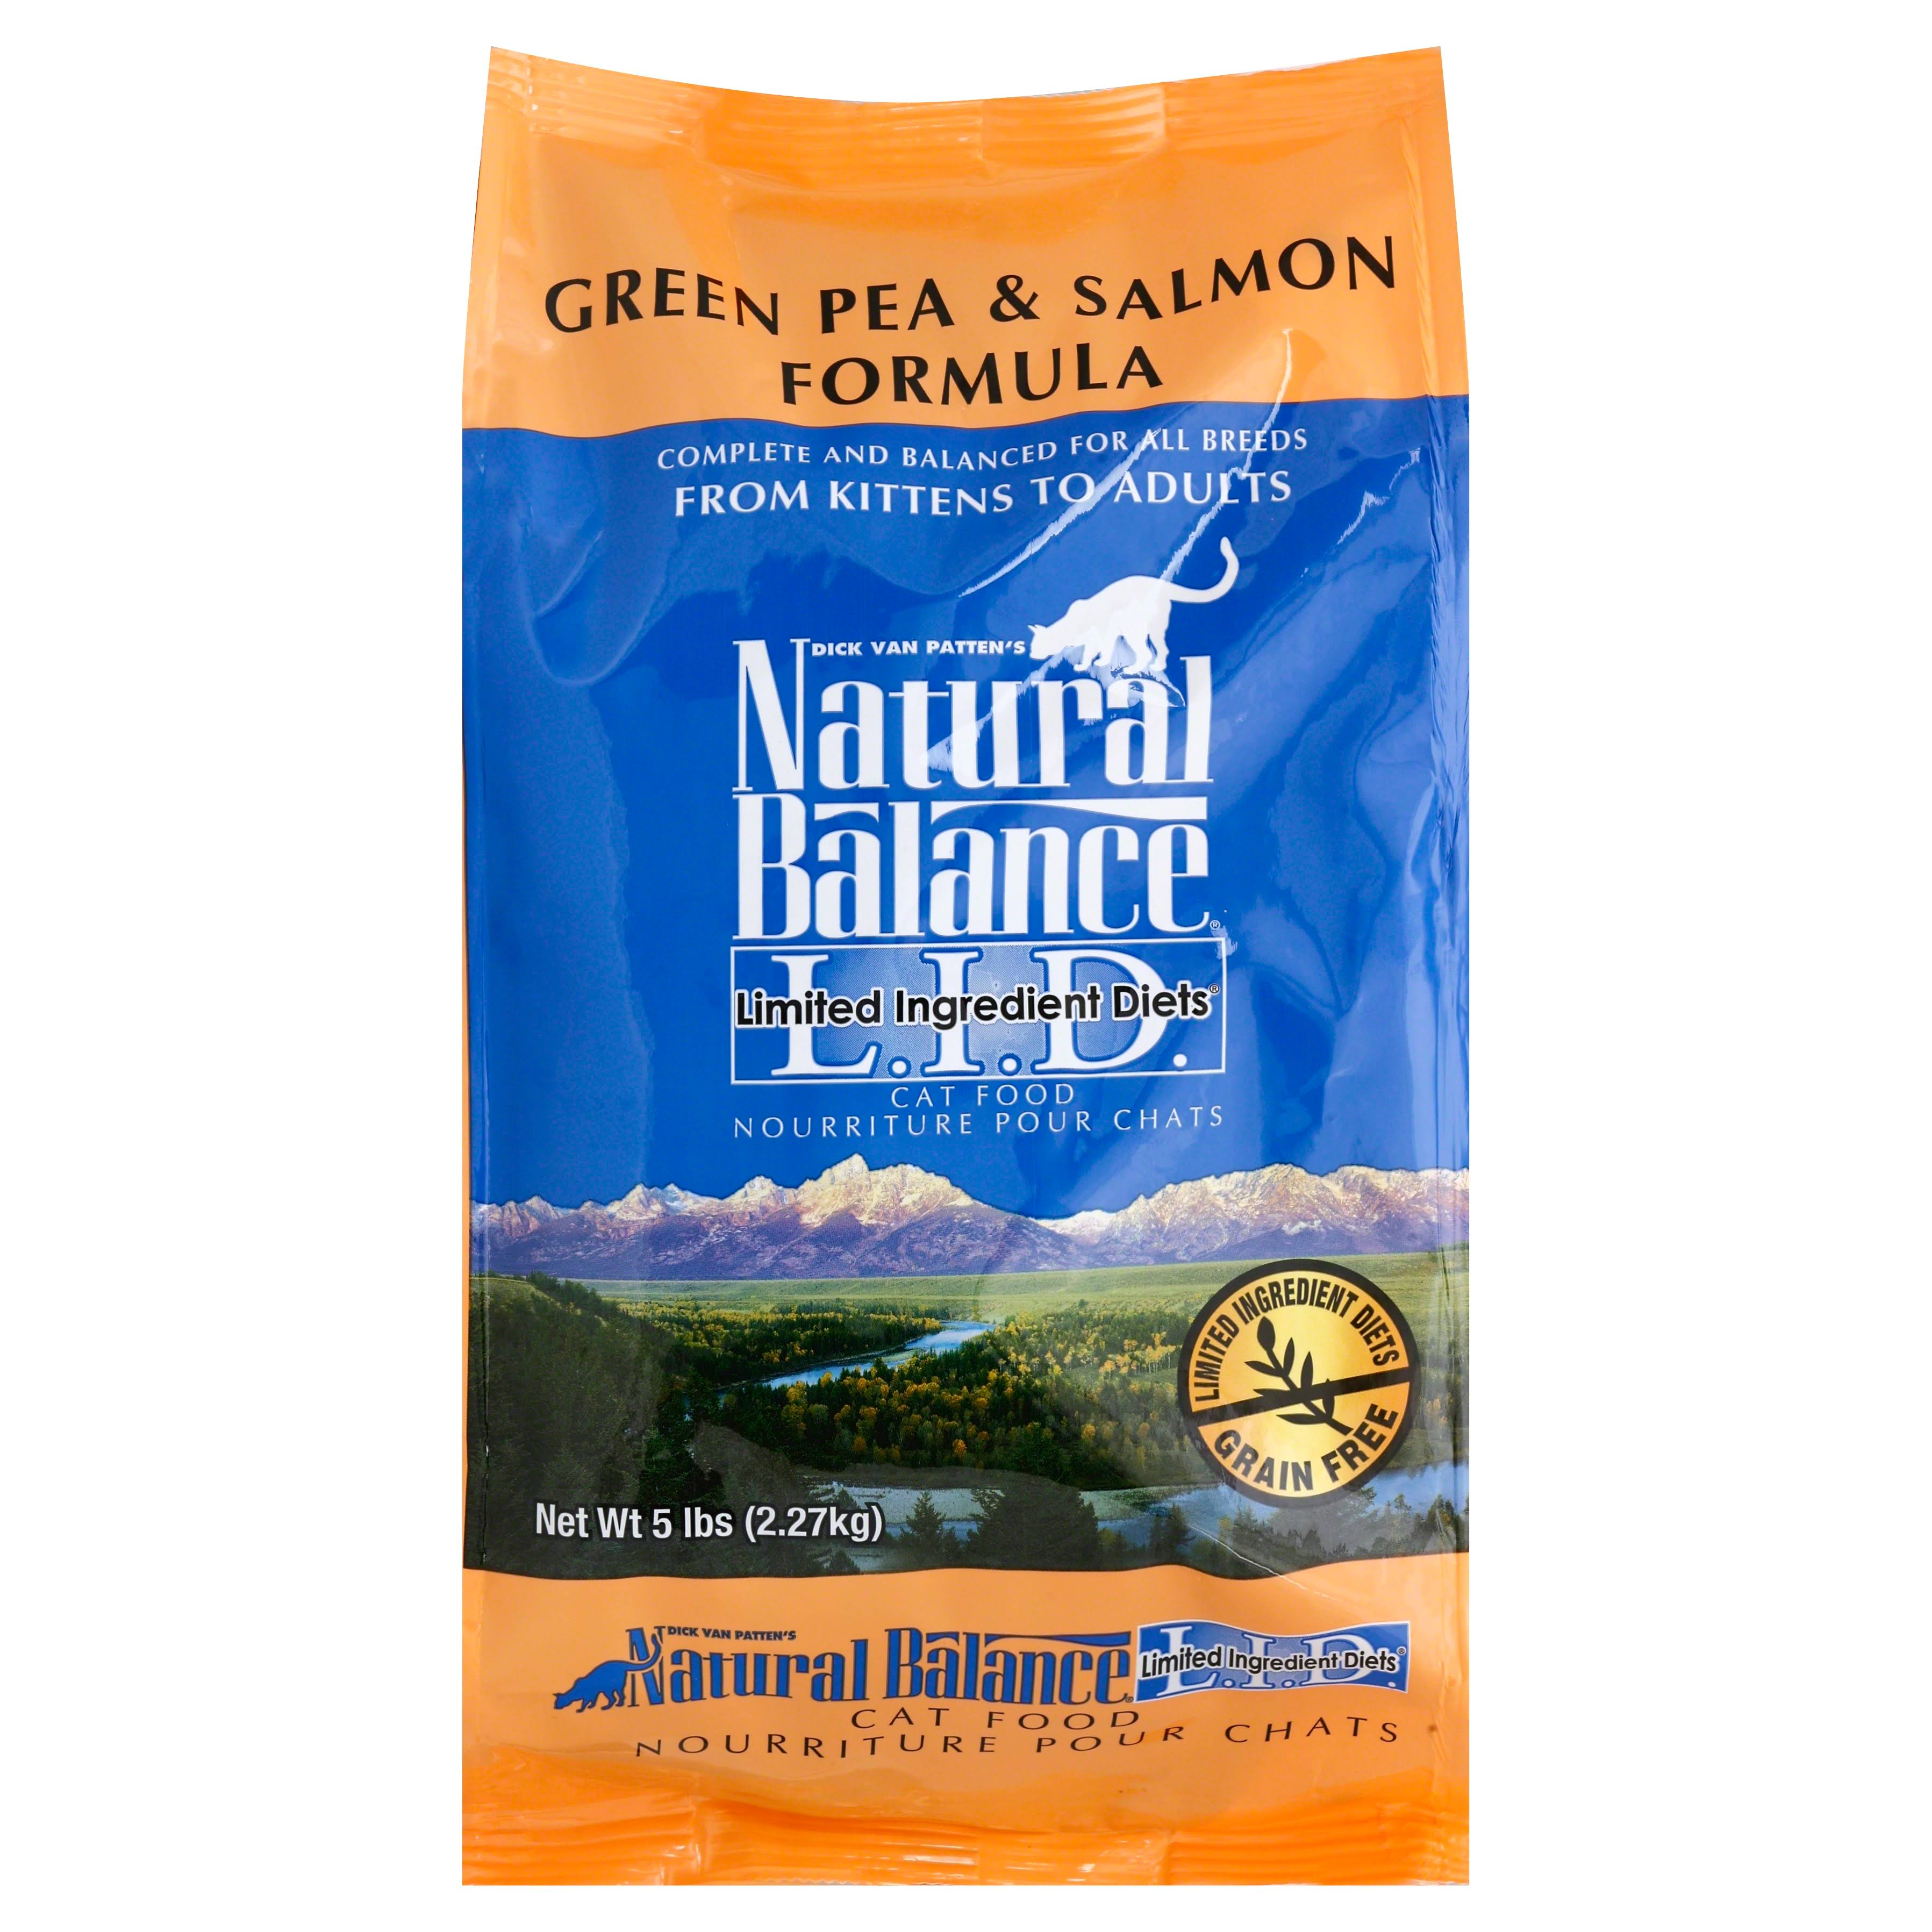 Natural Balance Cat Food - Green Pea and Salmon Formula, 5lb